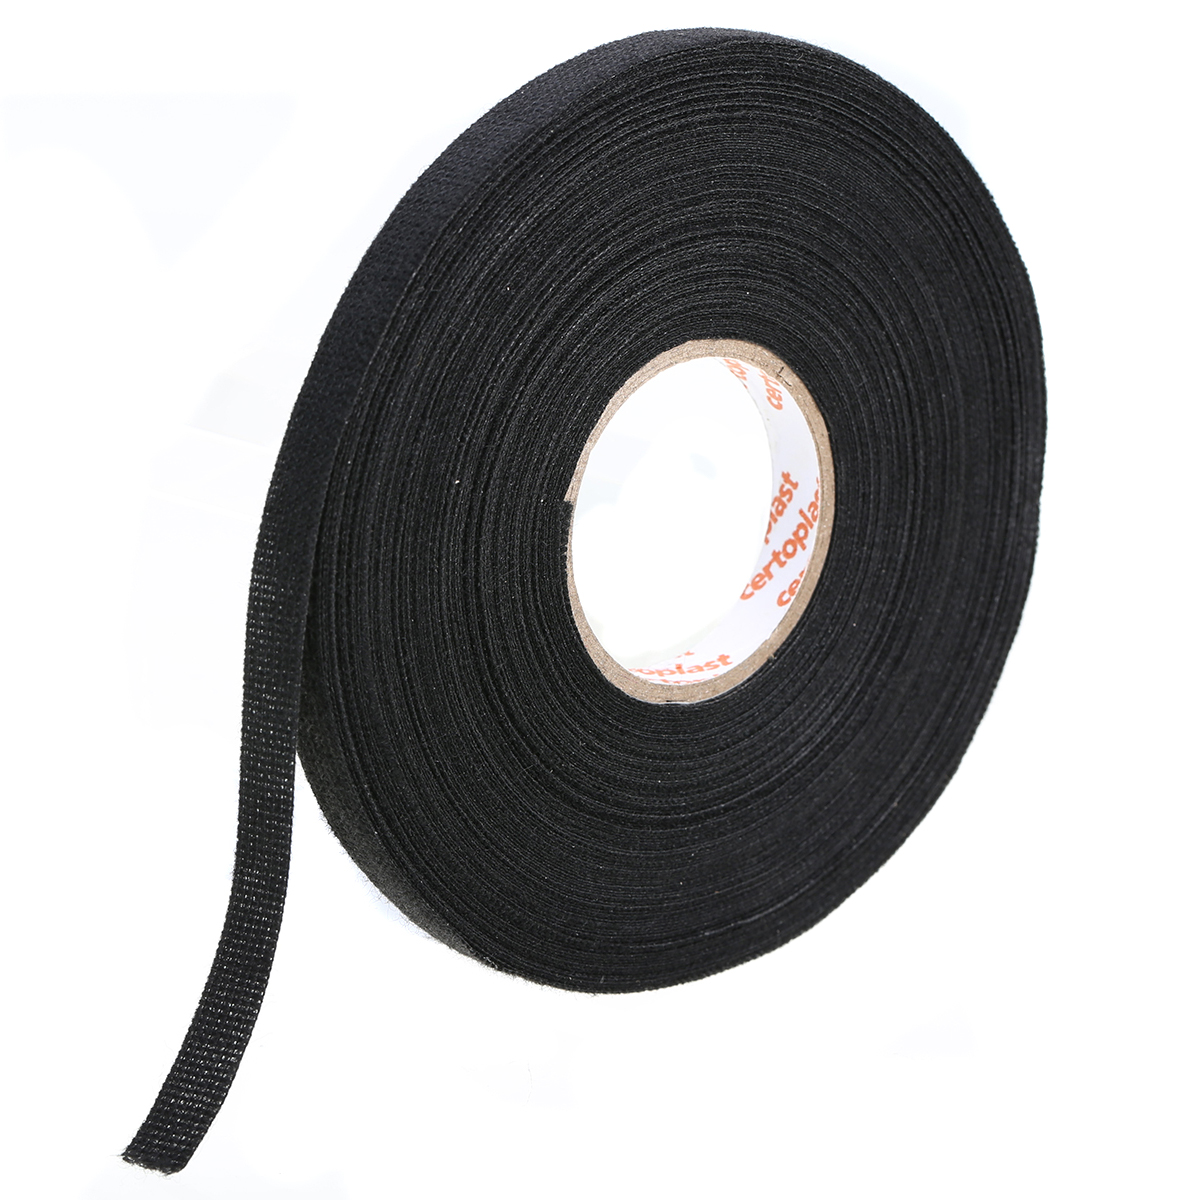 1pc Looms Wiring Harness Adhesive Tapes Black Cloth Fabric Tape Durable  Cable Protection Accessories for Cars 25m x 9mm x 0.3mm-in Sealers from  Home ...